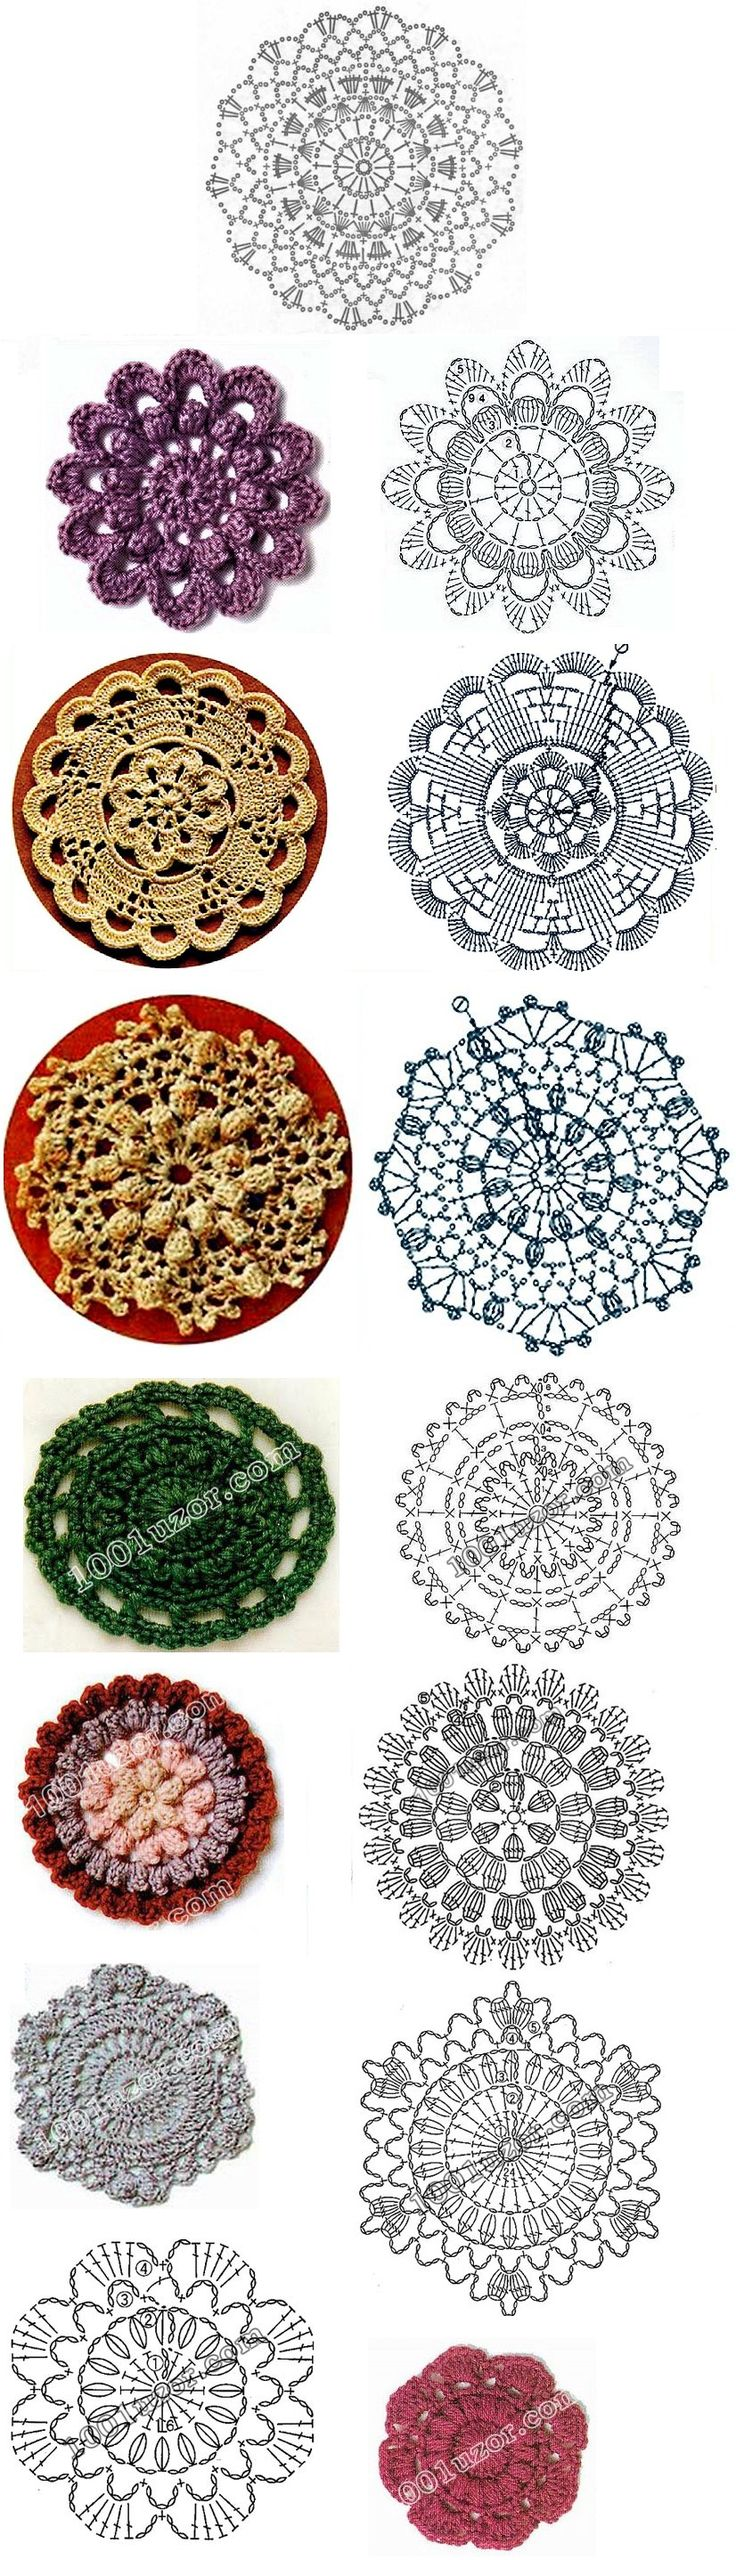 Beautiful crochet motifs!